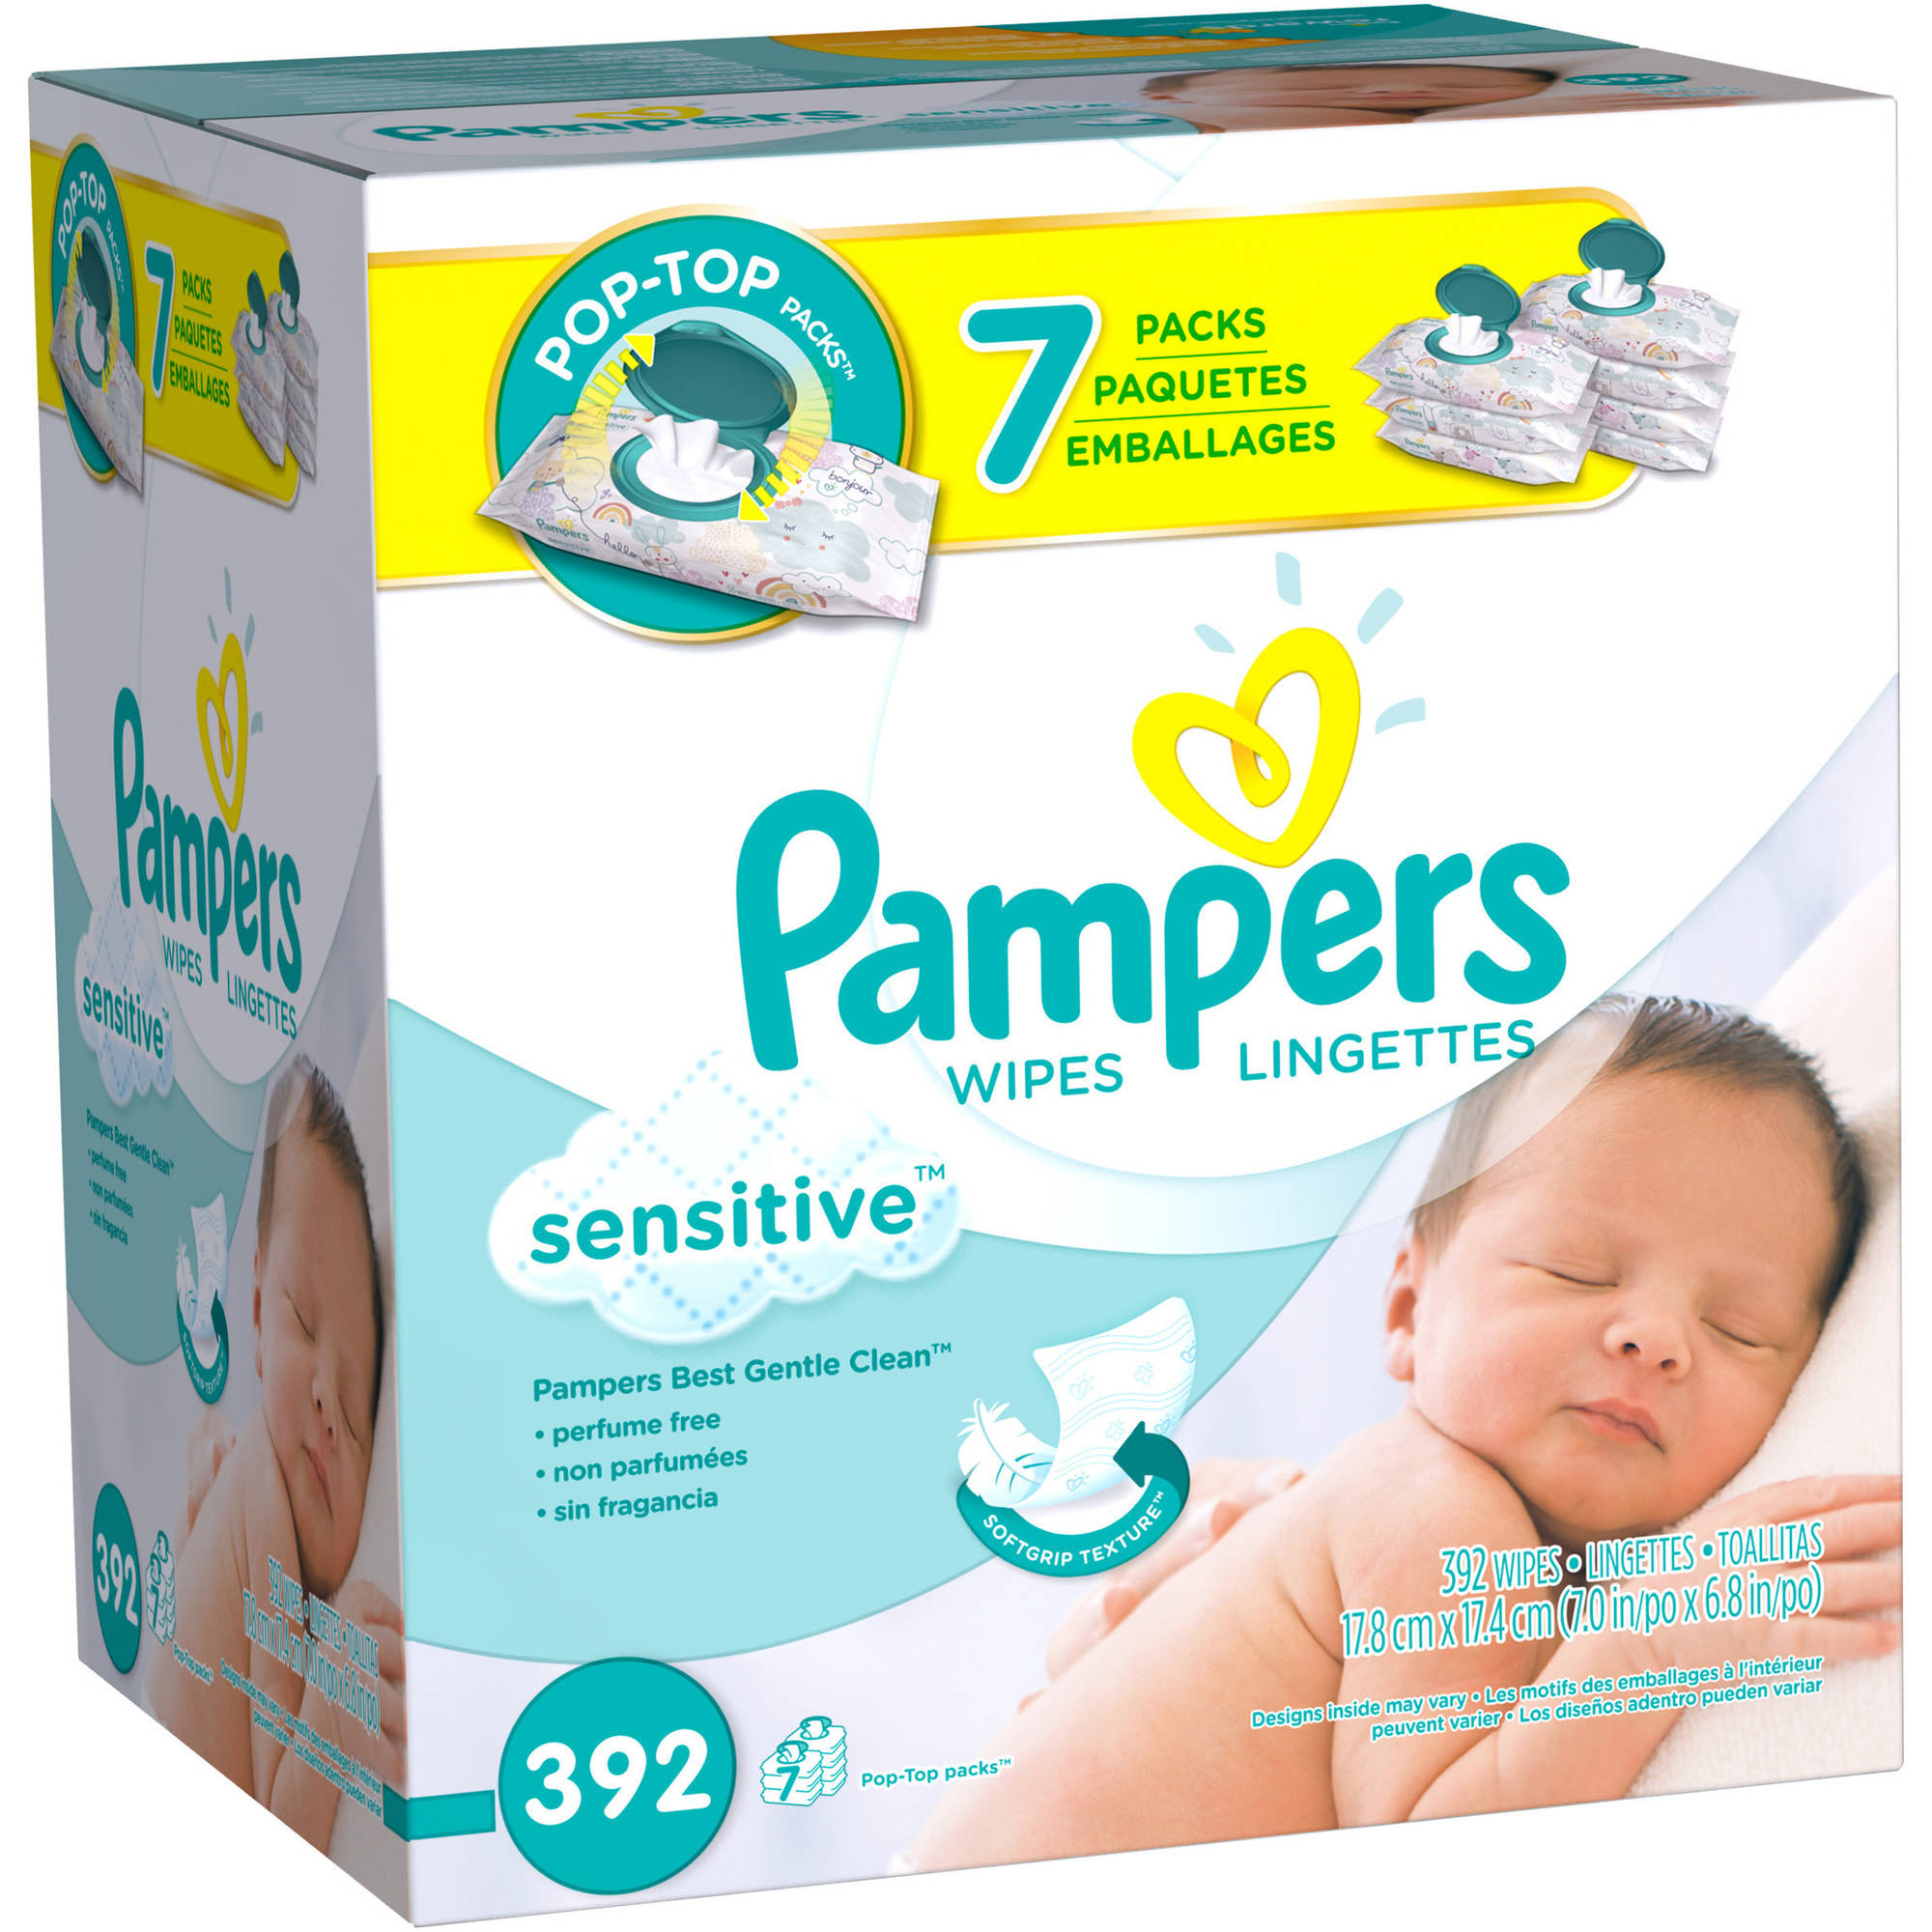 Pampers Sensitive Baby Wipes, 392 sheets